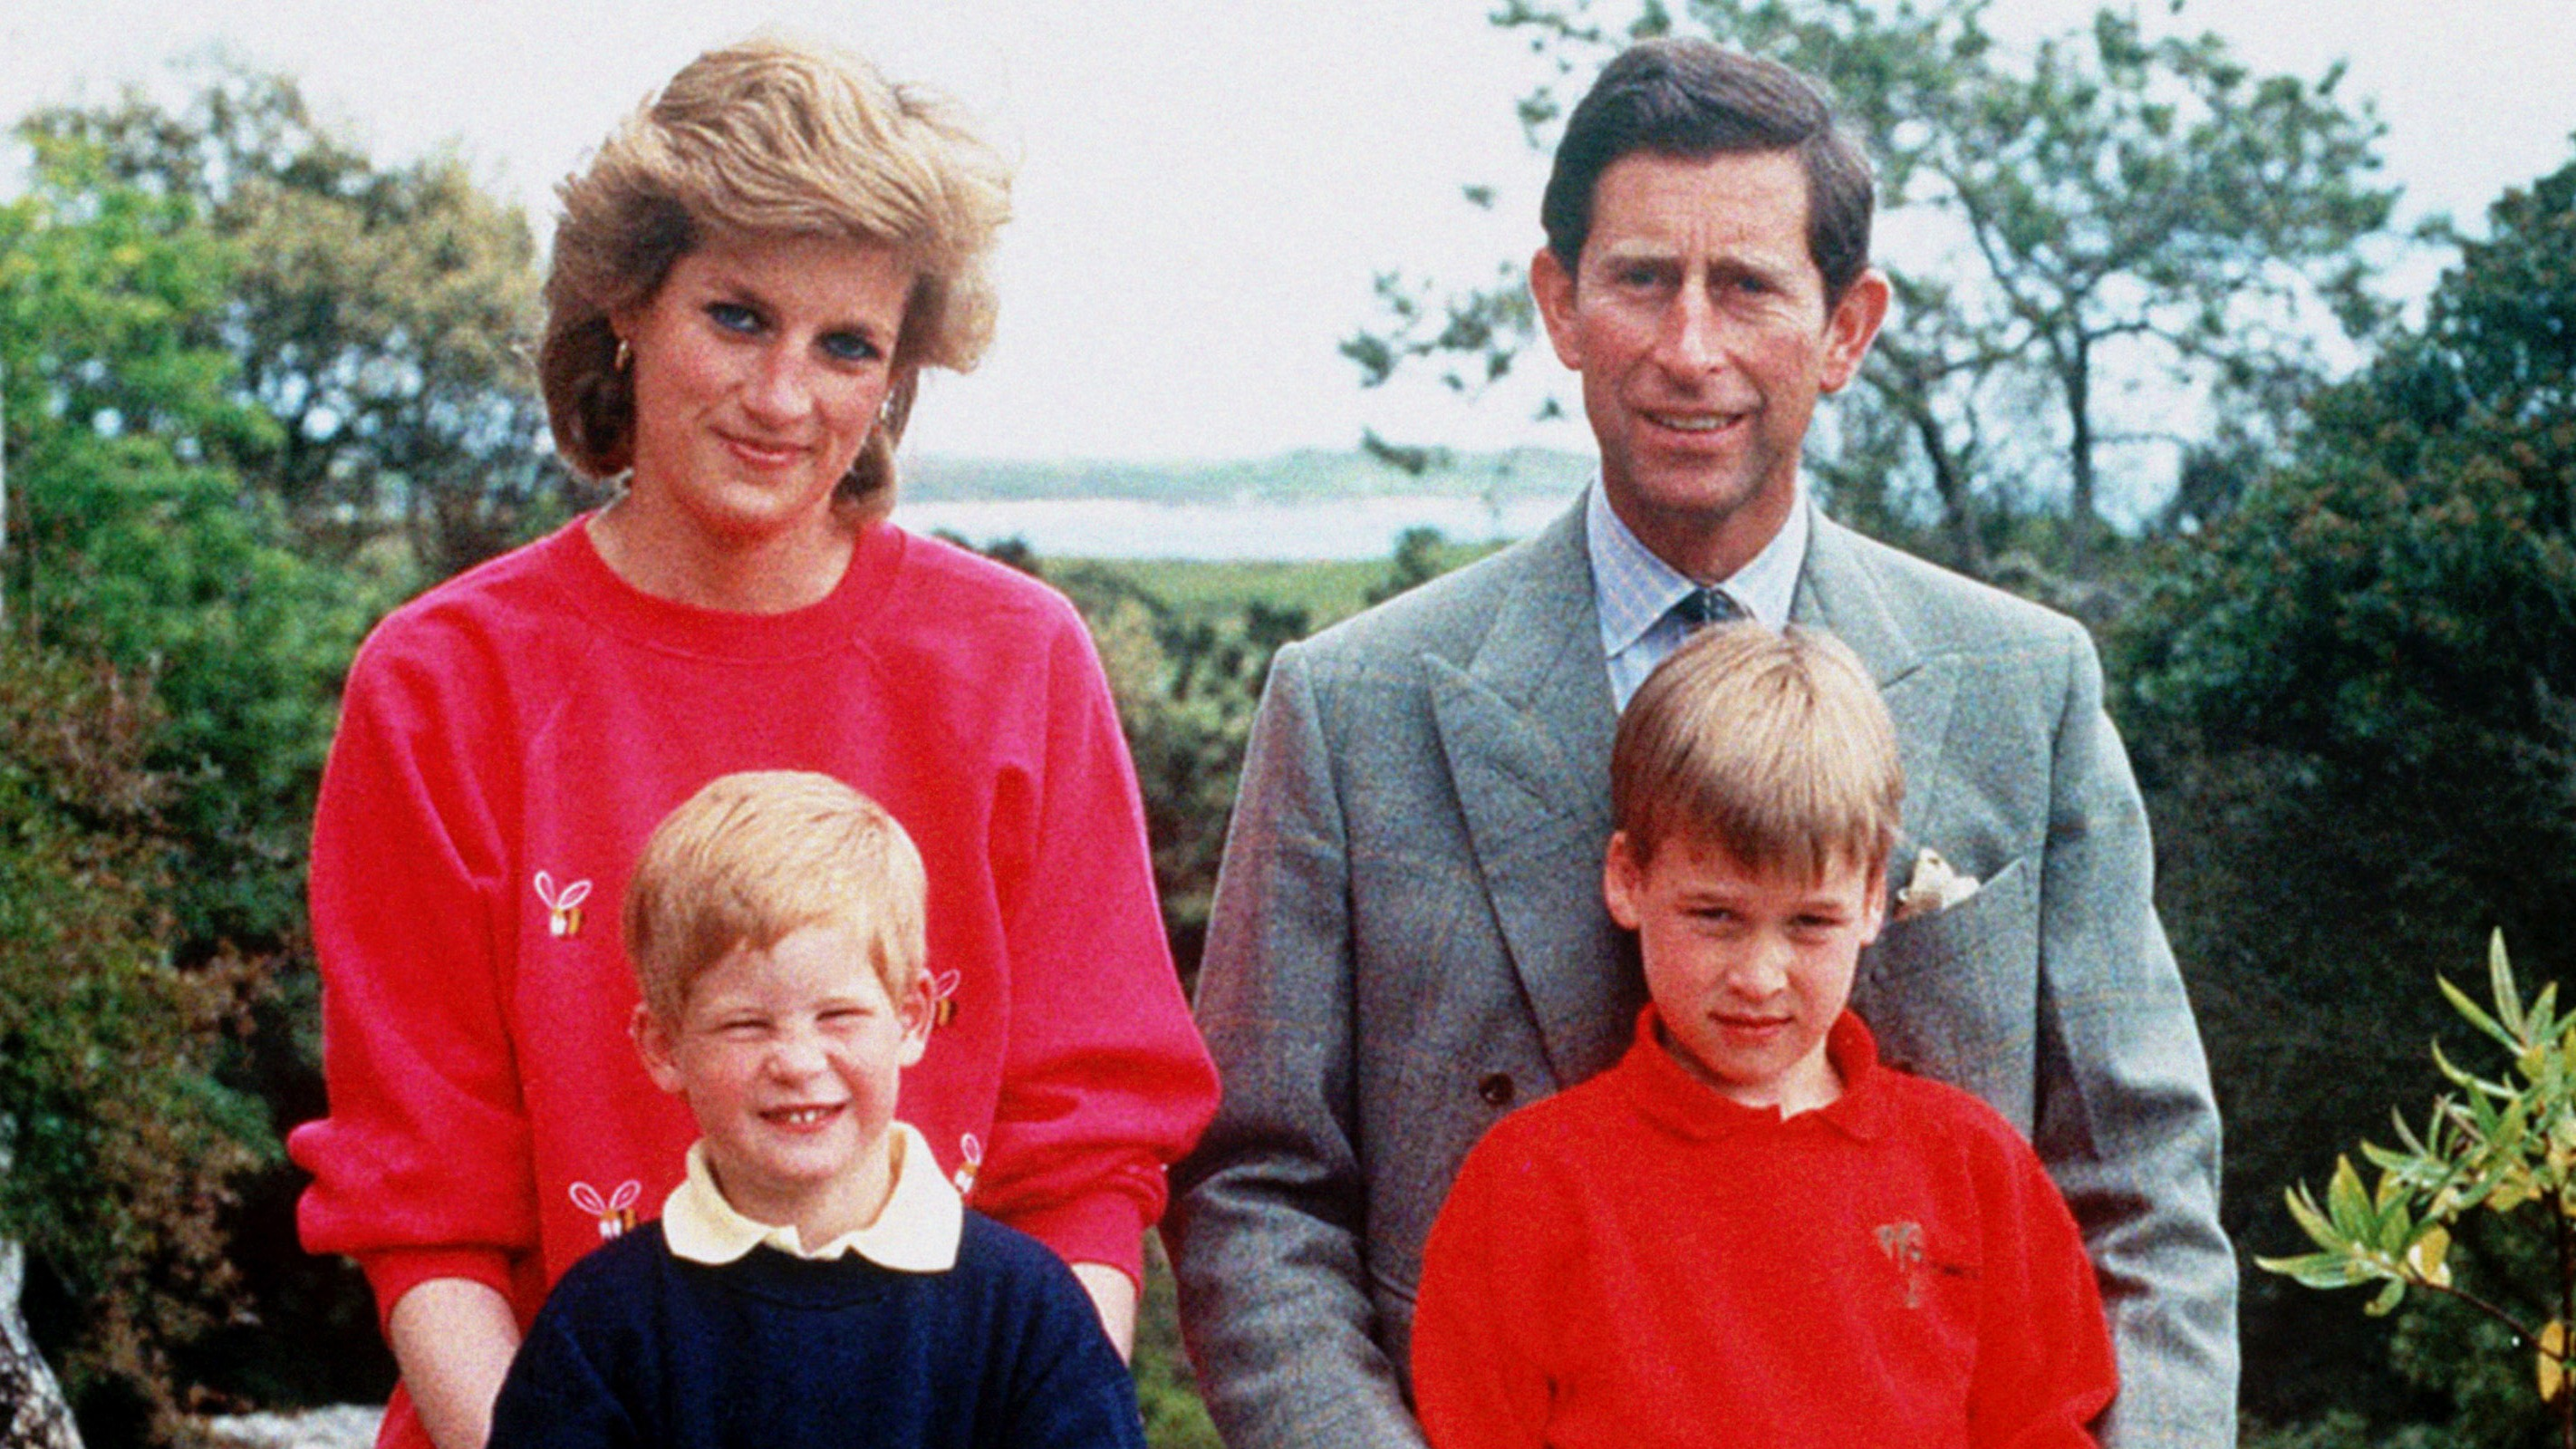 BBC Postpones Royal Documentary About Spin After Princess Dianas Death